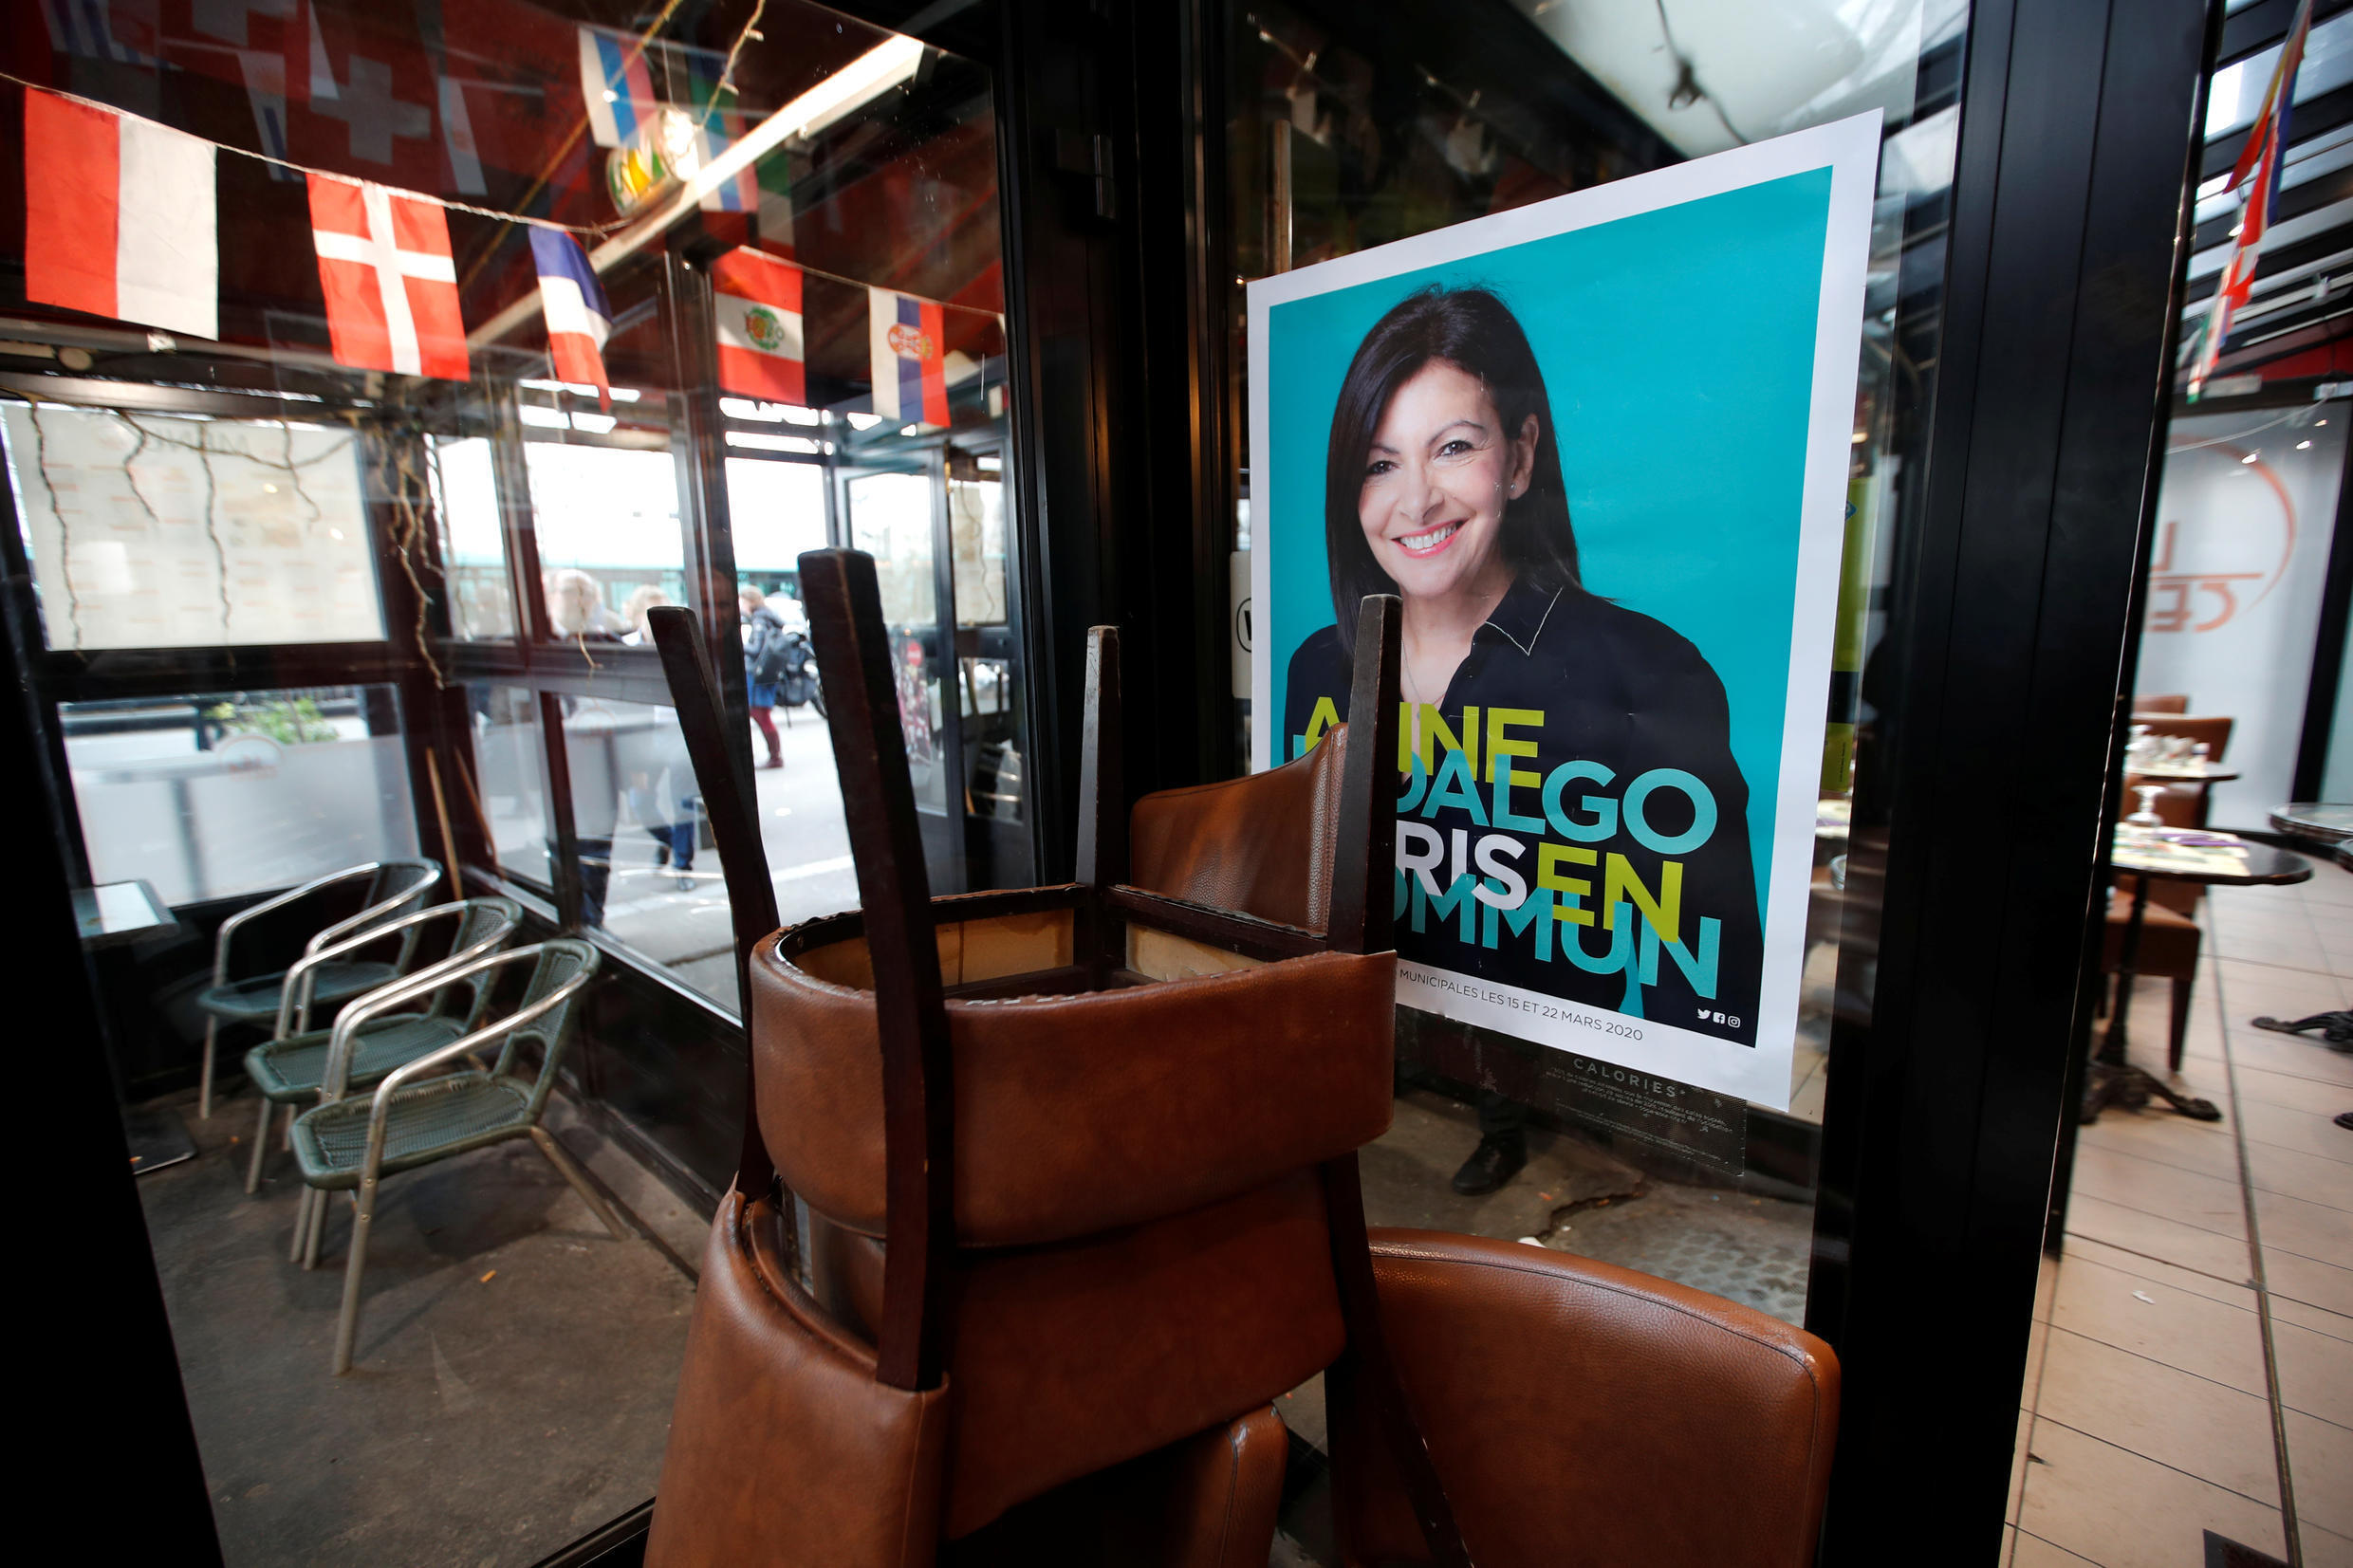 An electoral campaign poster of Paris Mayor Anne Hidalgo is displayed in a Paris restaurant on January 13, 2020.